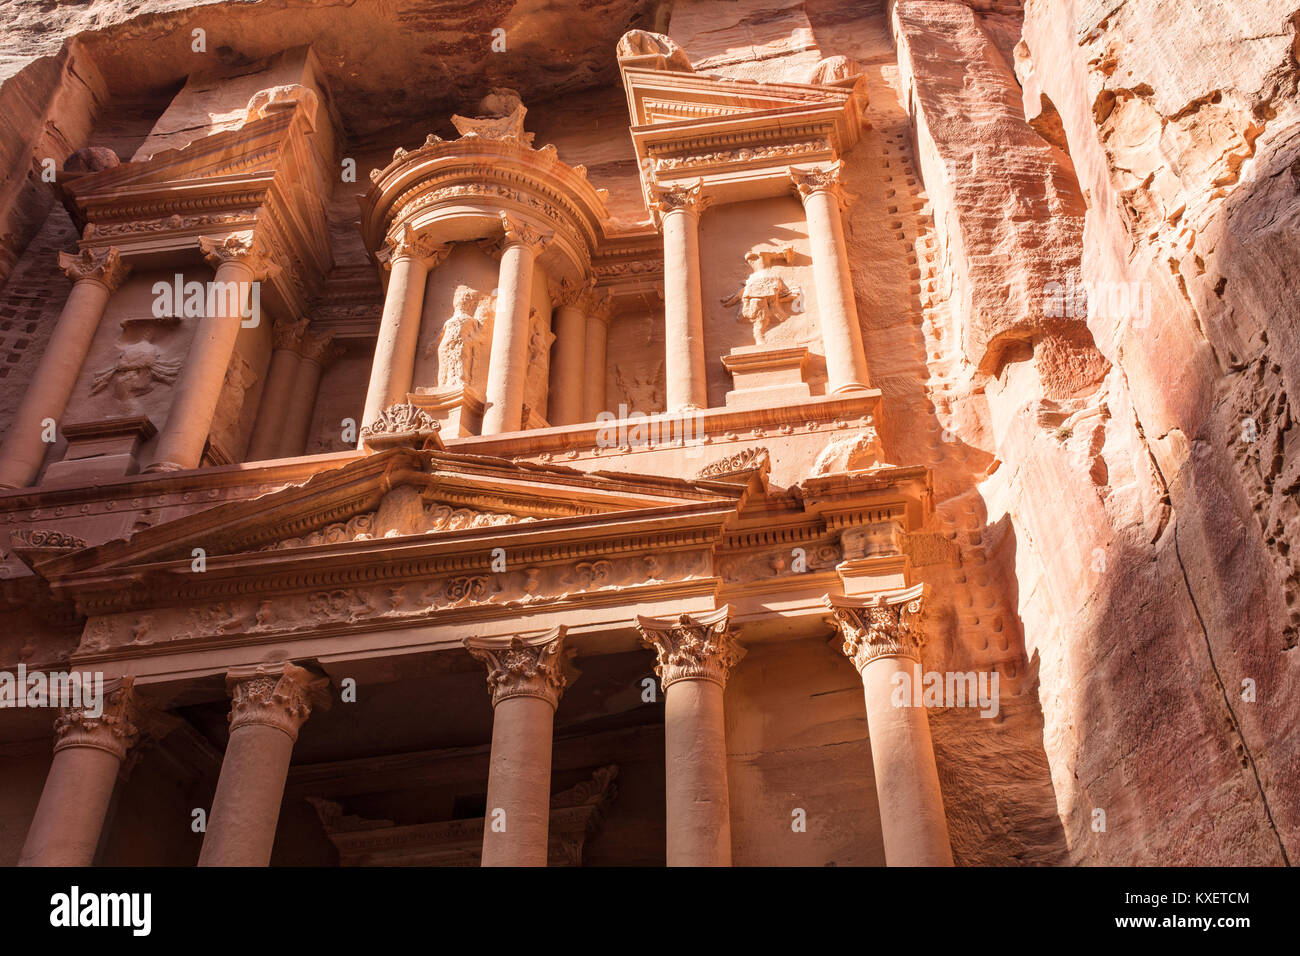 The lost city of Petra Stock Photo